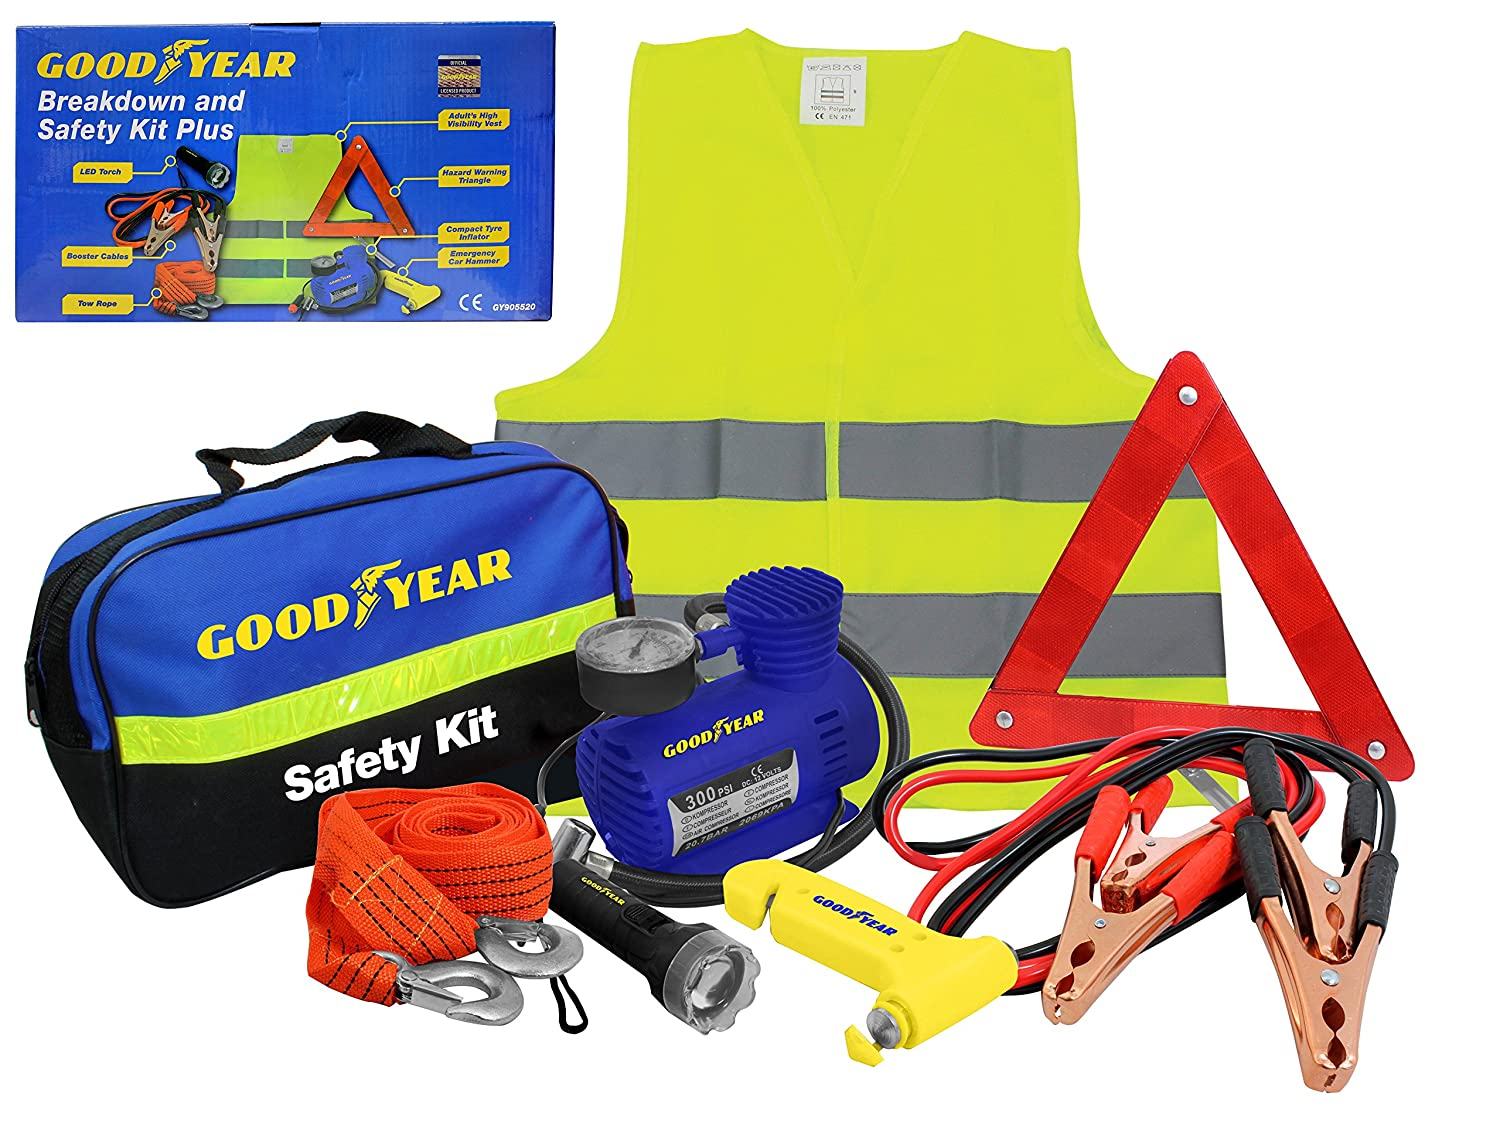 Goodyear 8pc Car Vehicle Safety Breakdown Kit Includes Emergency High Visability Vest/Bib, Tow Rope, Jump Leads, LED Torch, Air Compressor, Warning Triangle 905520